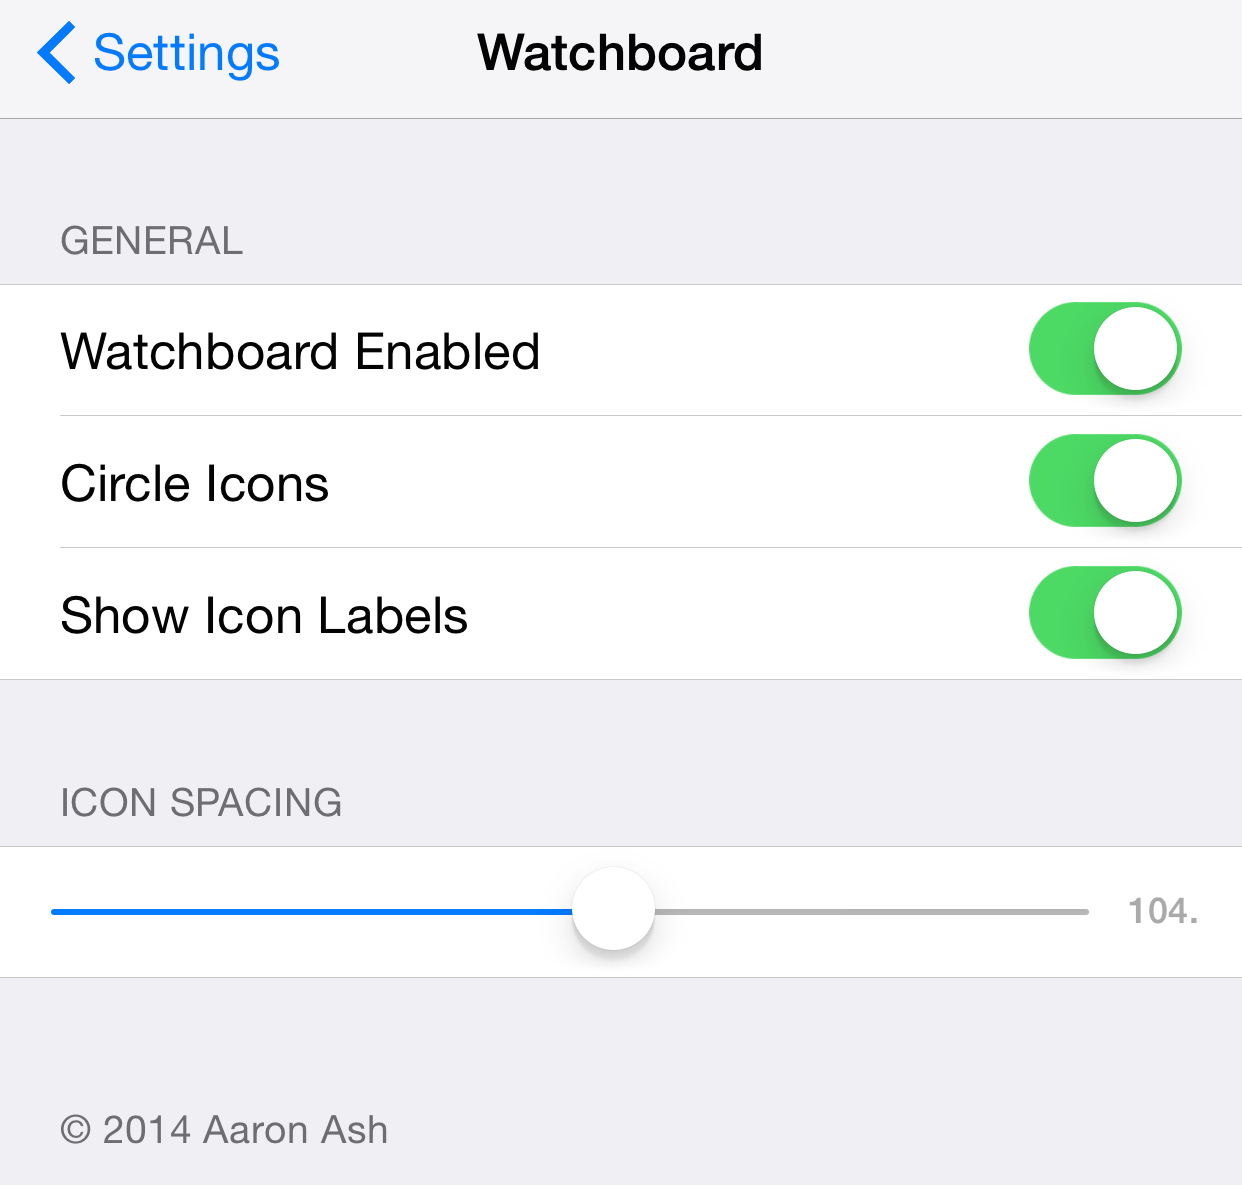 WatchBoard settings